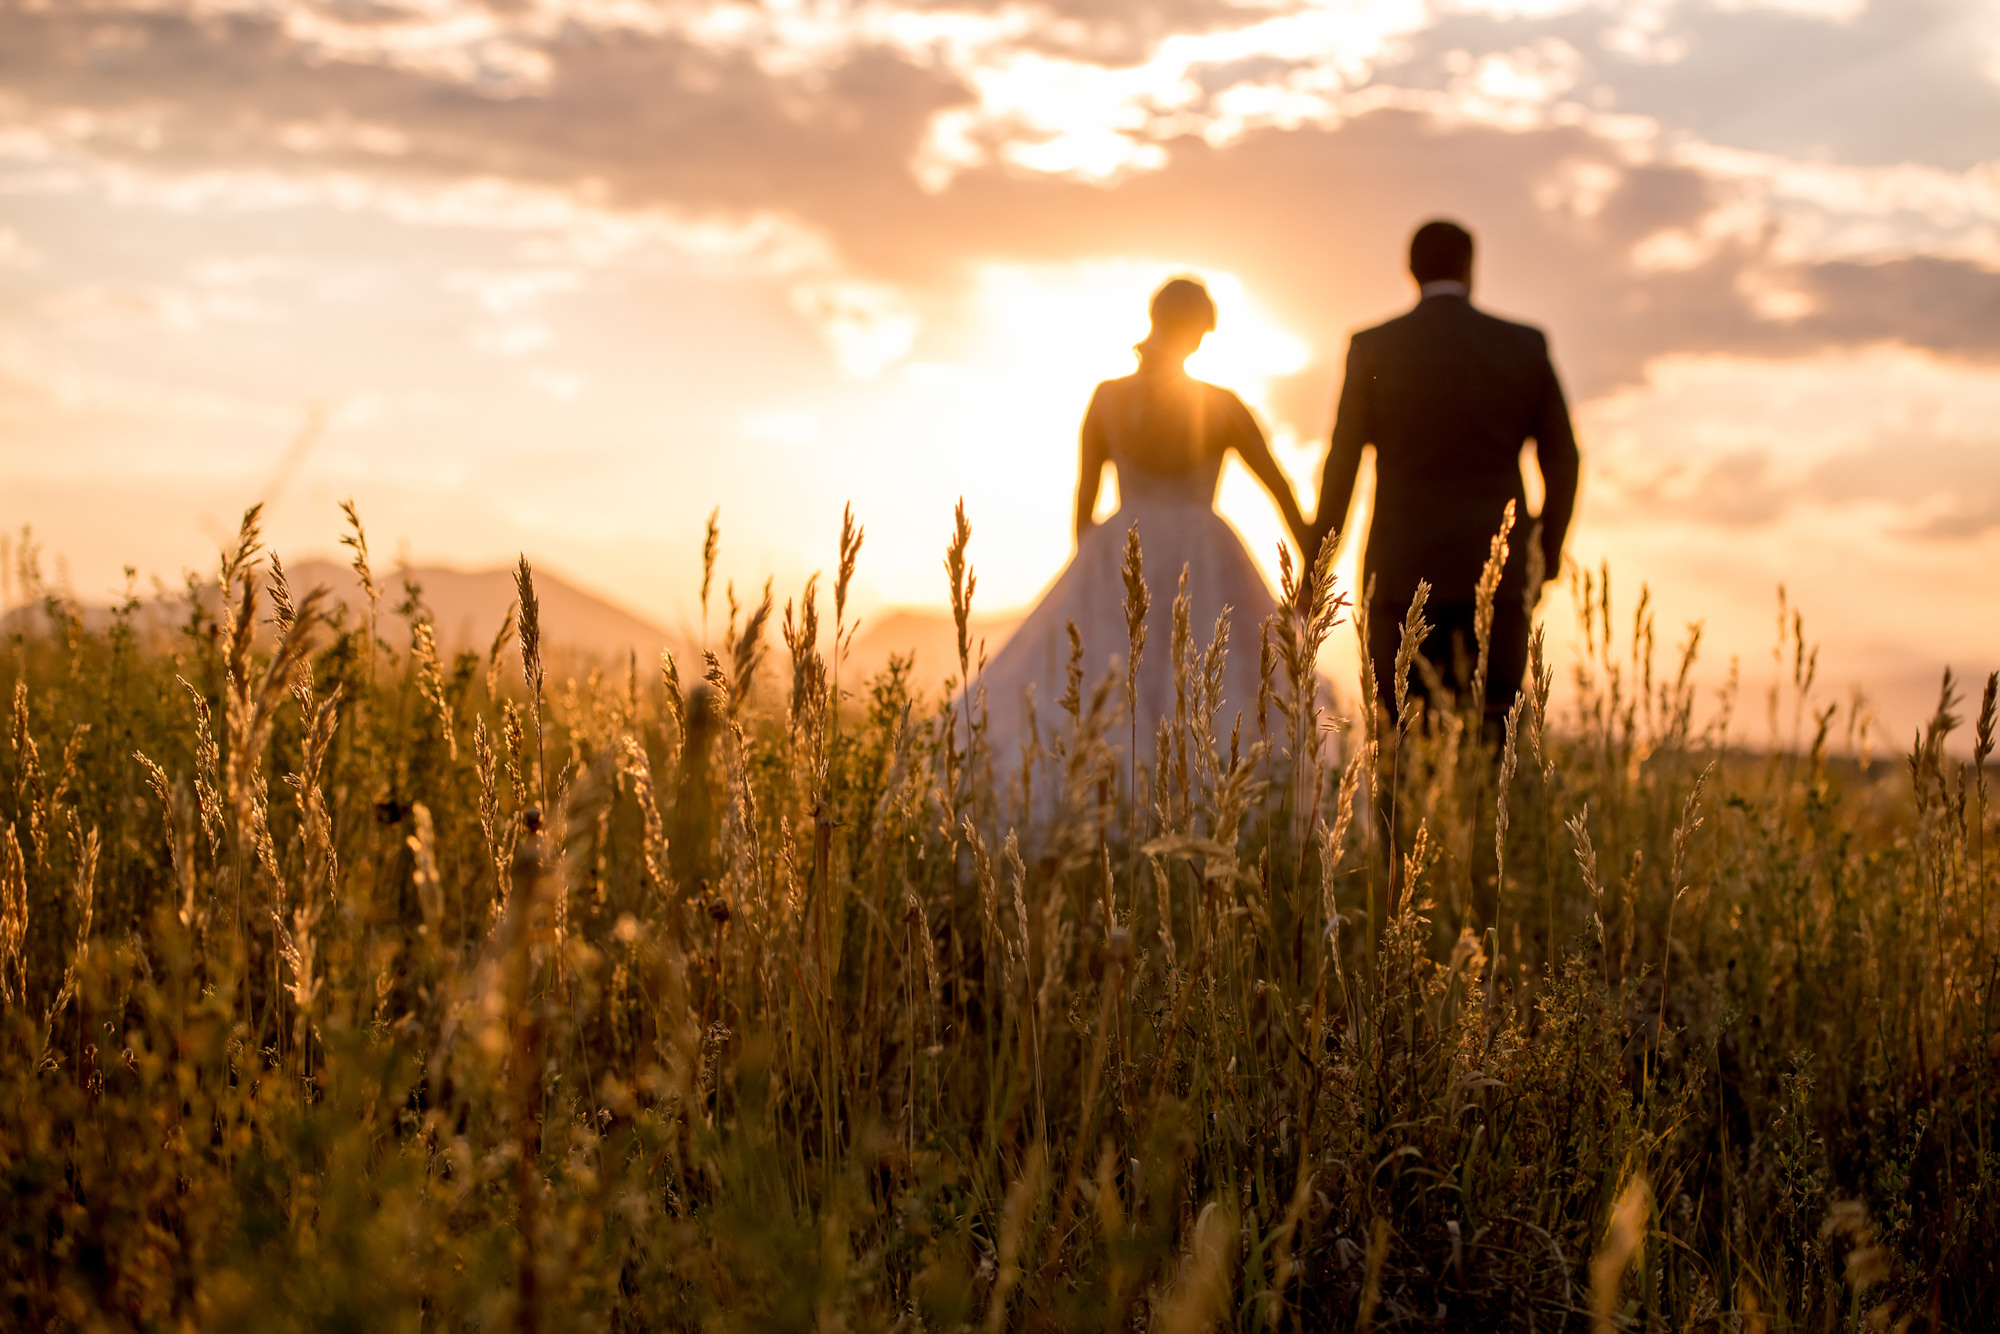 Couple walking away in sunlit grass field - Morgan Lynn Photography